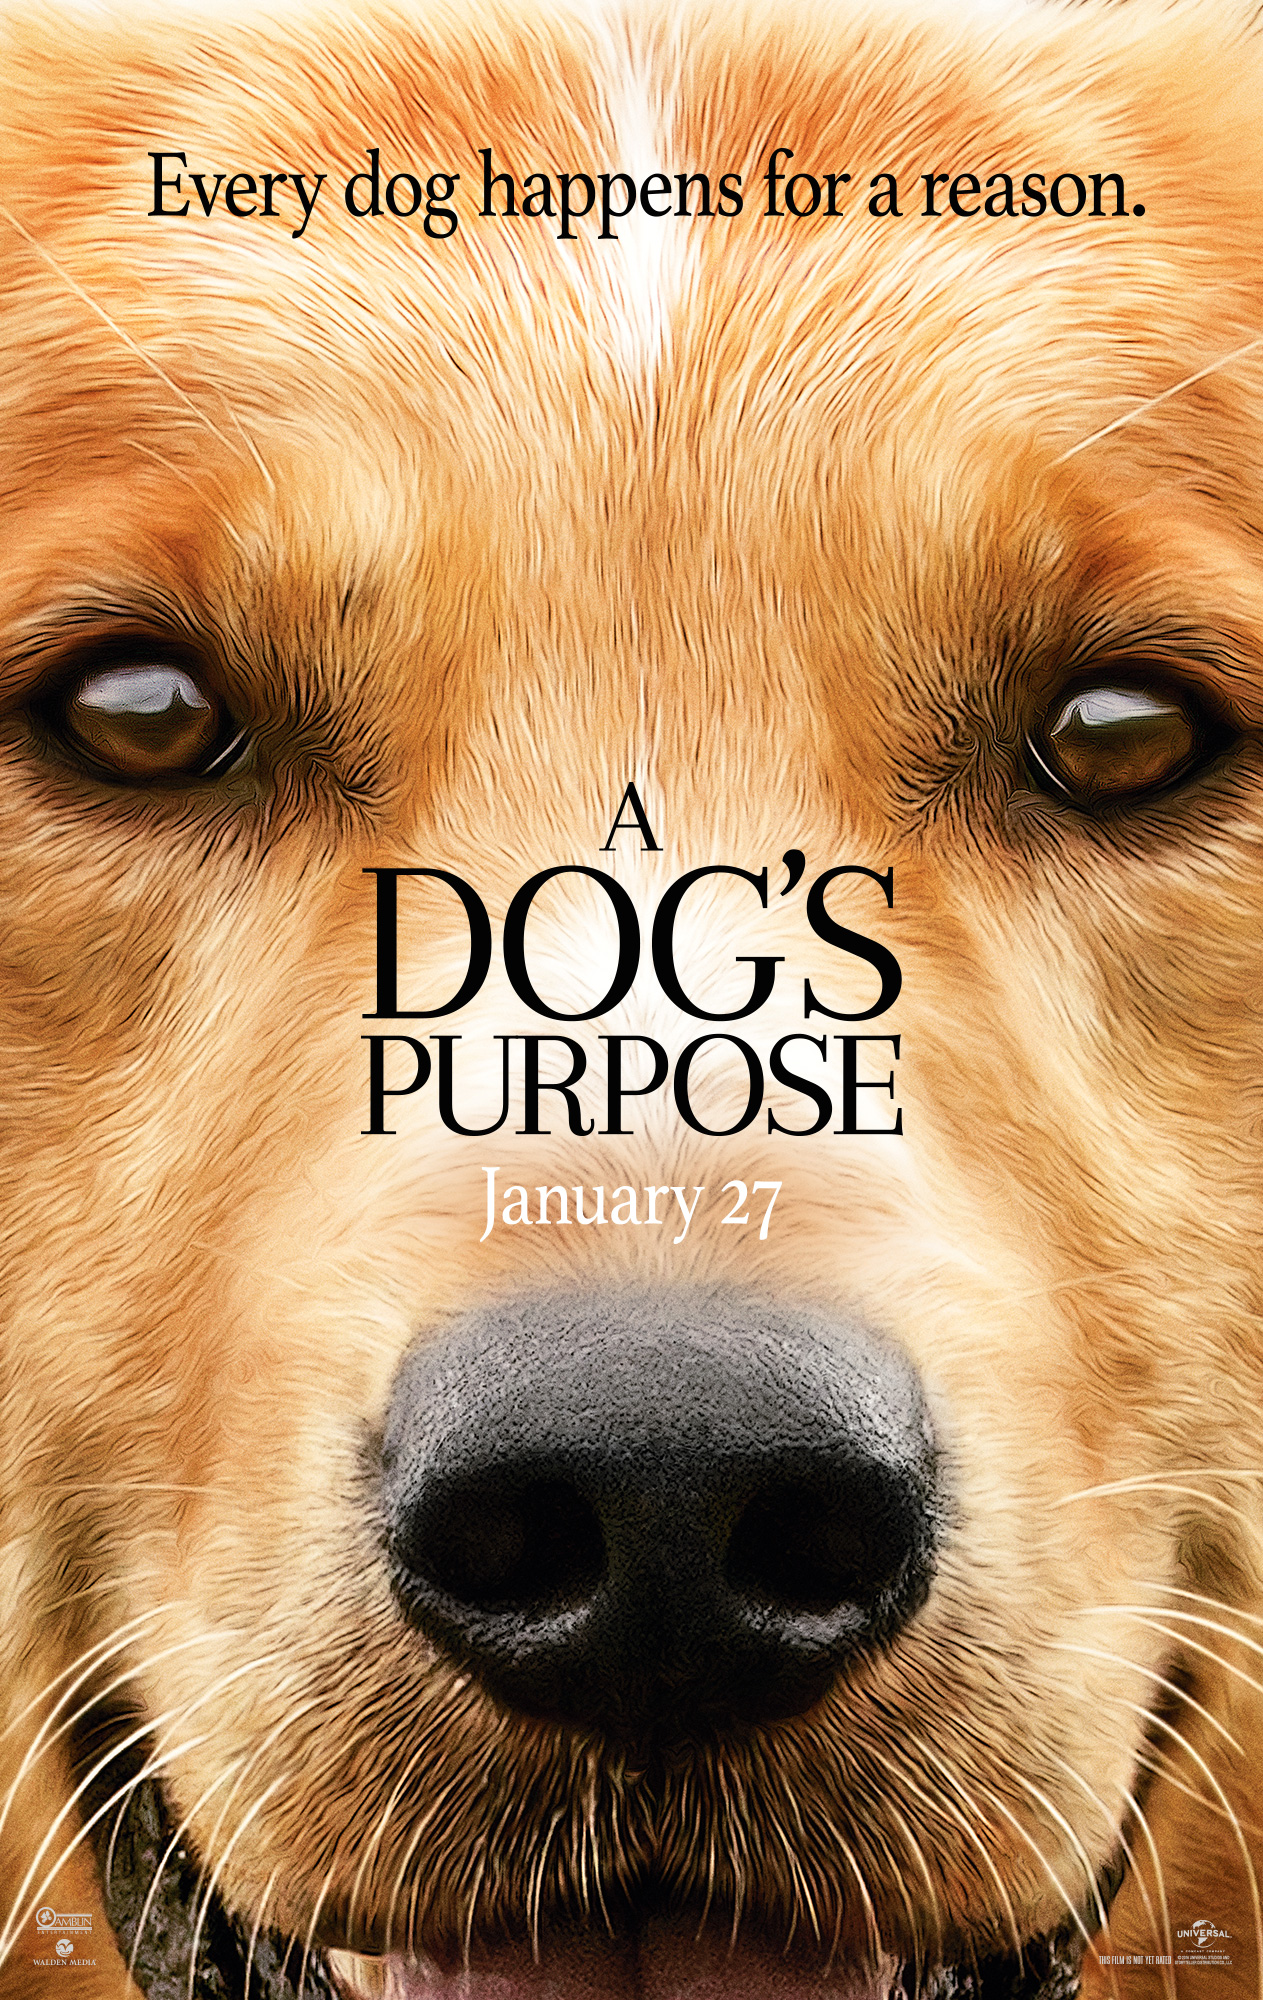 1-month BarkBox Gift Card ($35) Copy of the movie tie-in book A Dog's Purpose Calendar, Bandana, T-Shirt, Tennis Ball Launcher, and Frisbee